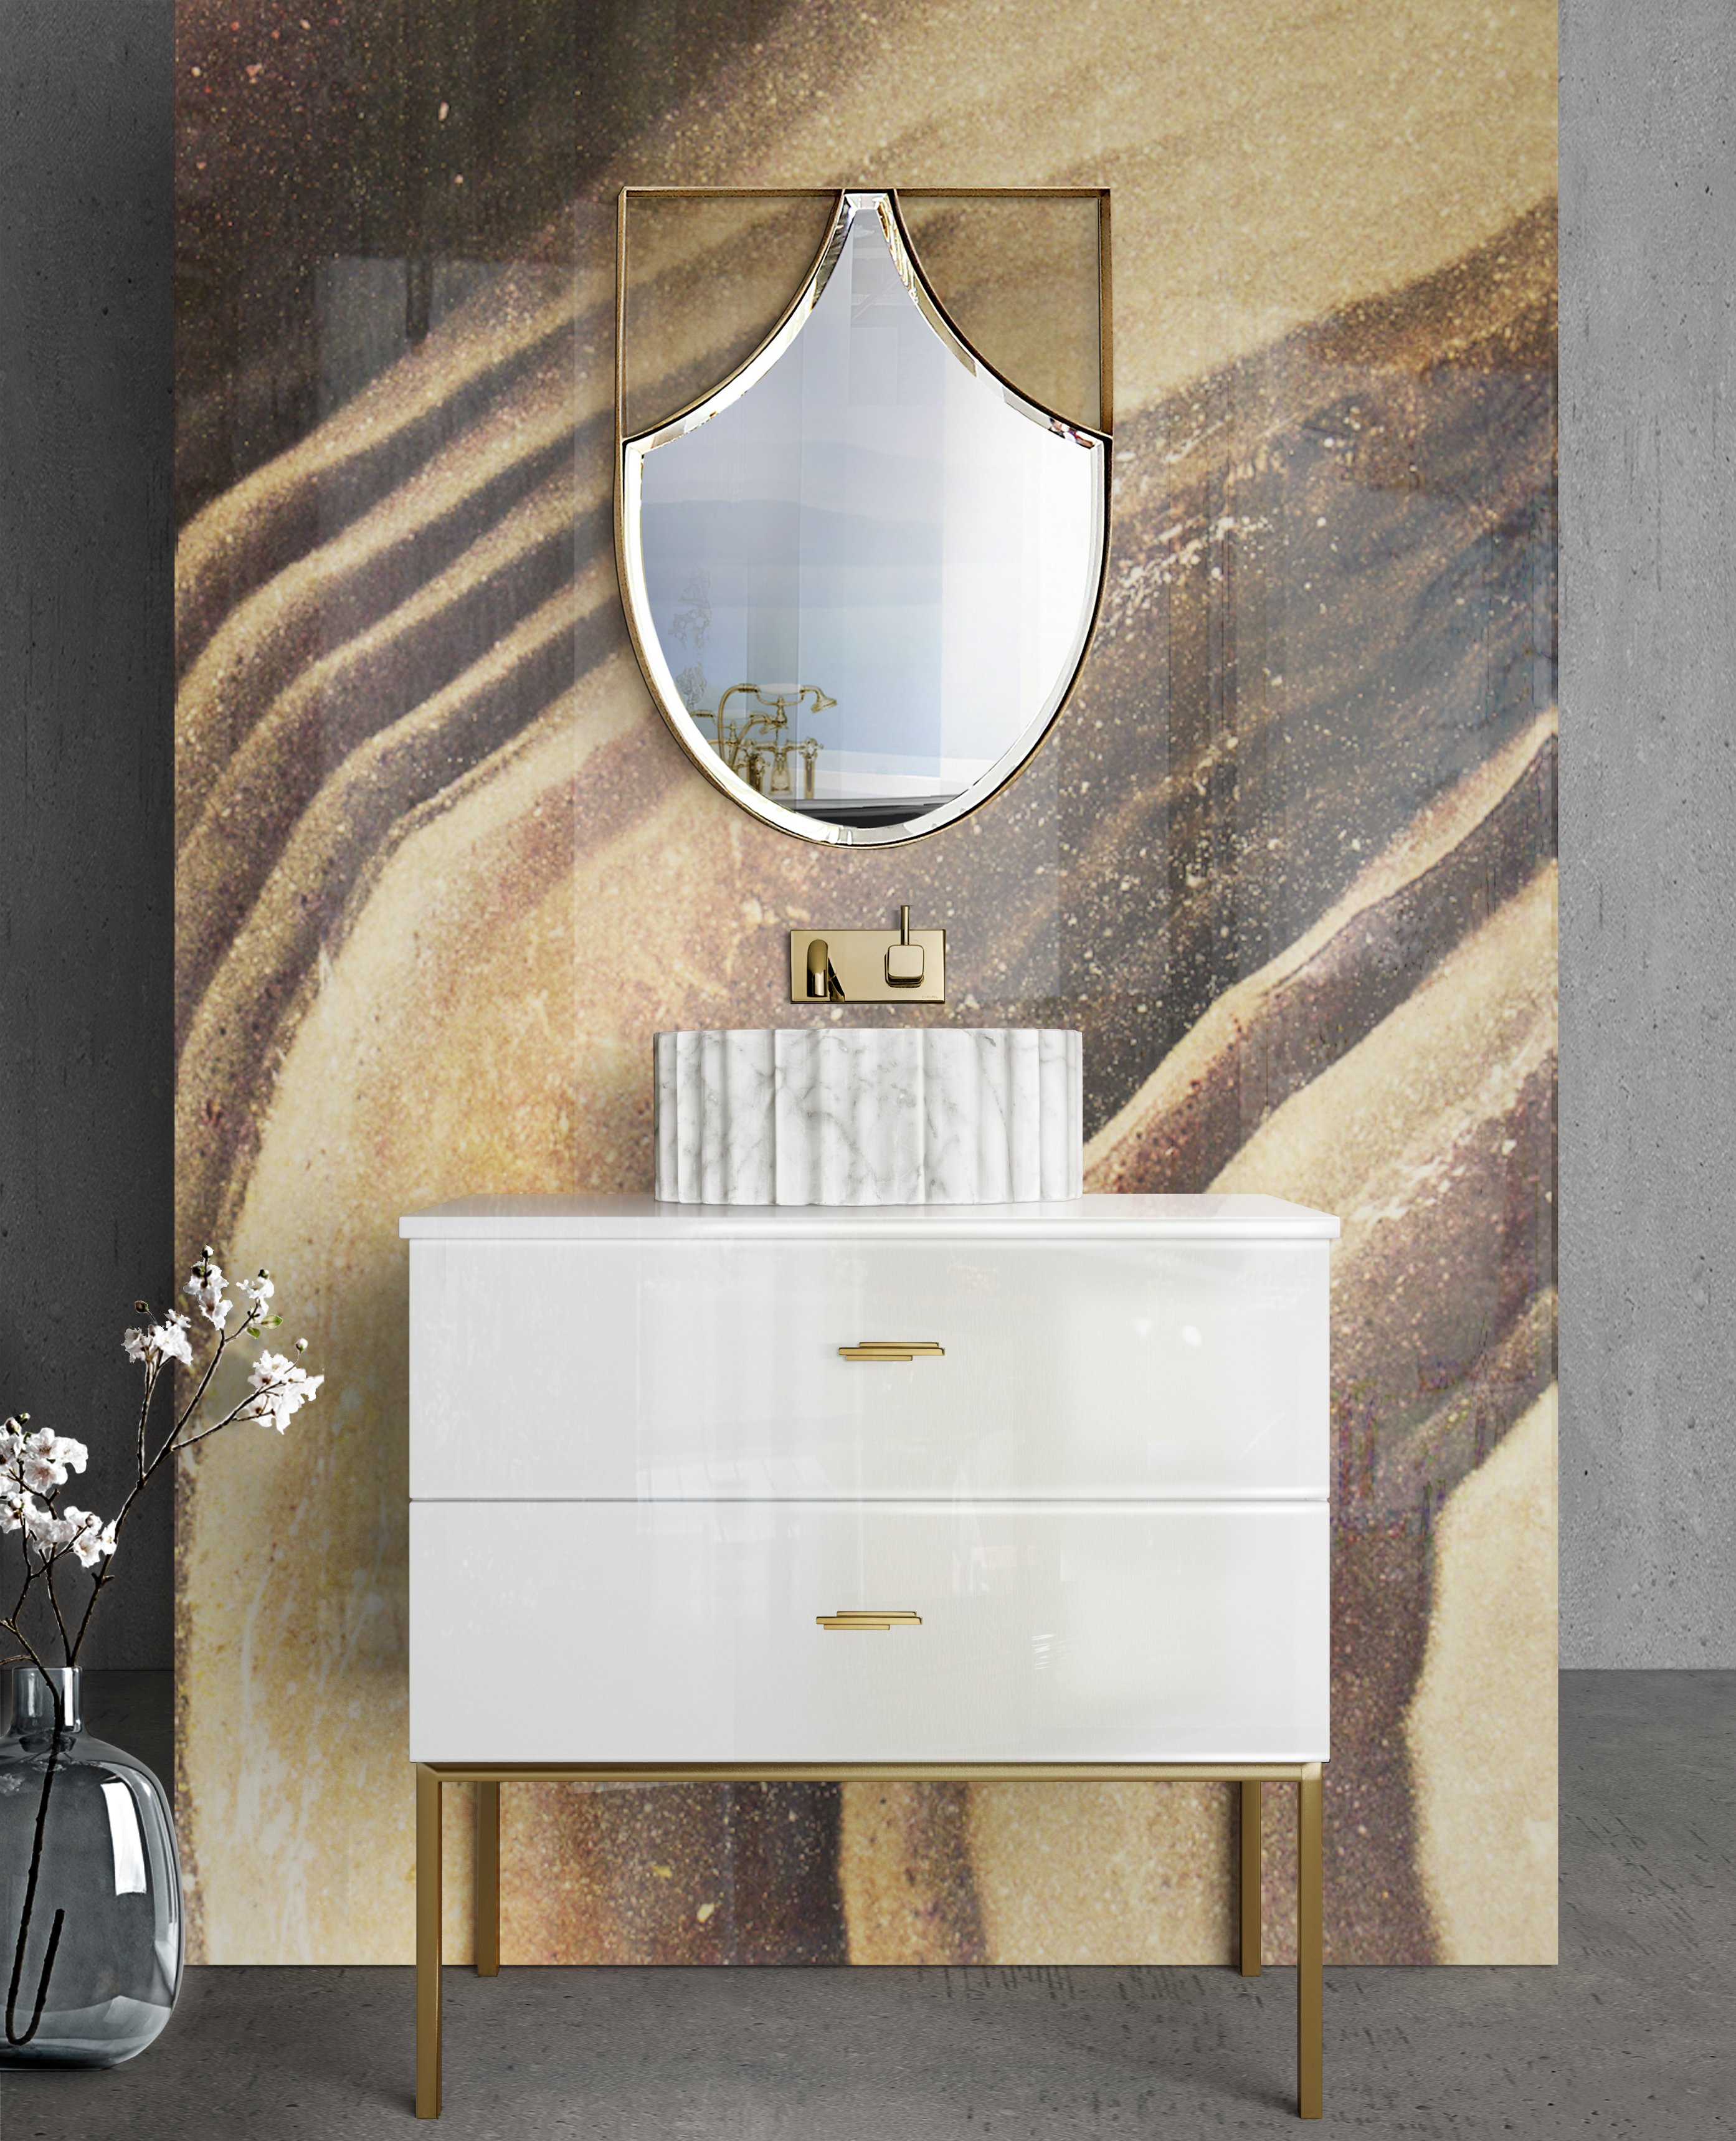 Decor Ideas, bathroom, bathroom decor, maison valentina, freestanding, spring, spring trends,   3 Amazing Decor Ideas to Make your Bathroom Bloom this Spring Spring Trends Bathroom Earth Tones